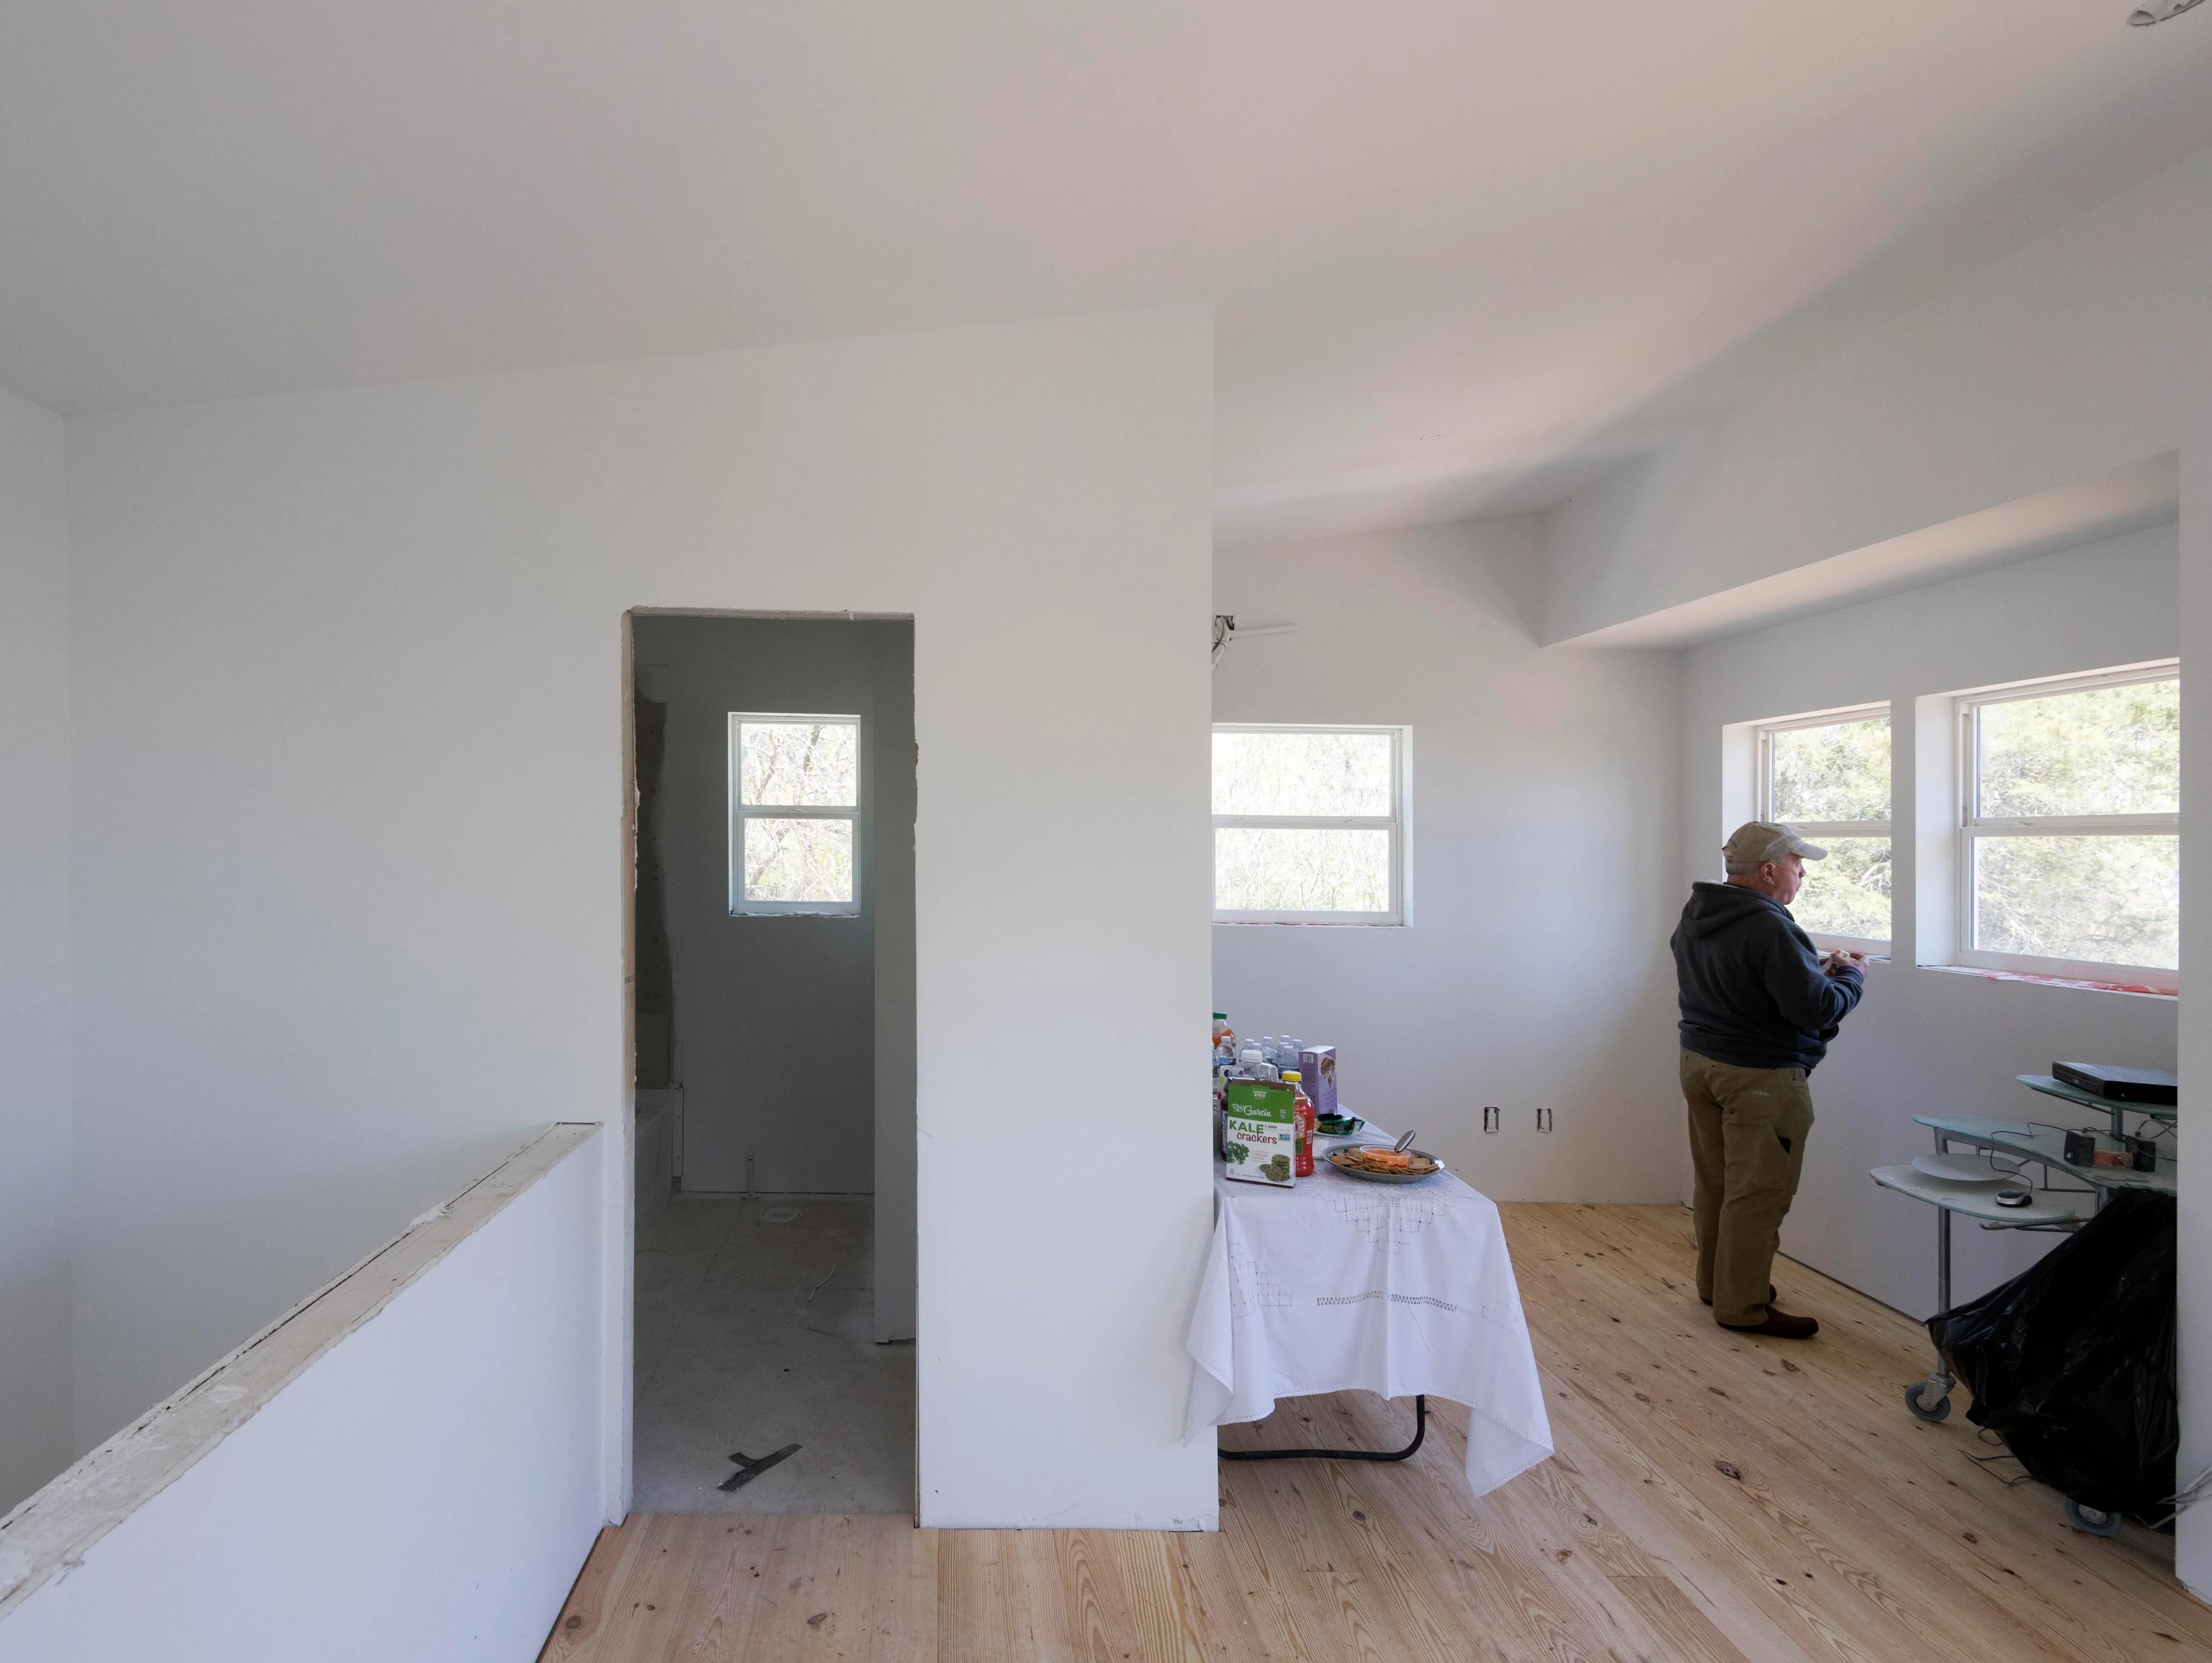 Richmond Orchard Tiny Home Community Looking For Buyers